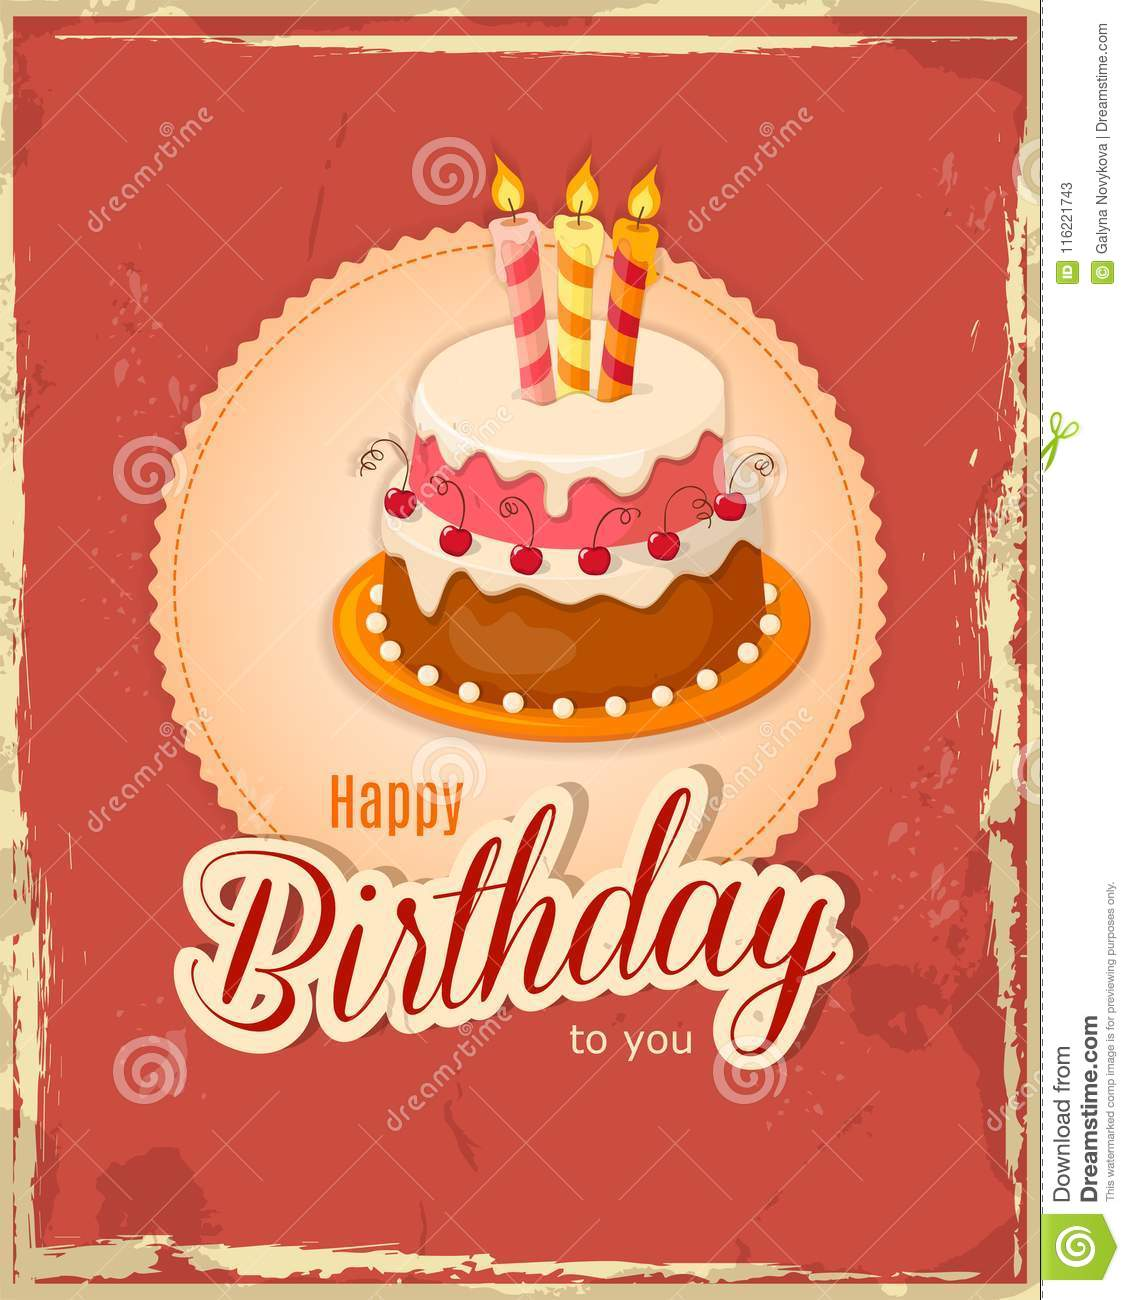 Red Vintage Birthday Card With Cake Tier On Napkin Stock Vector